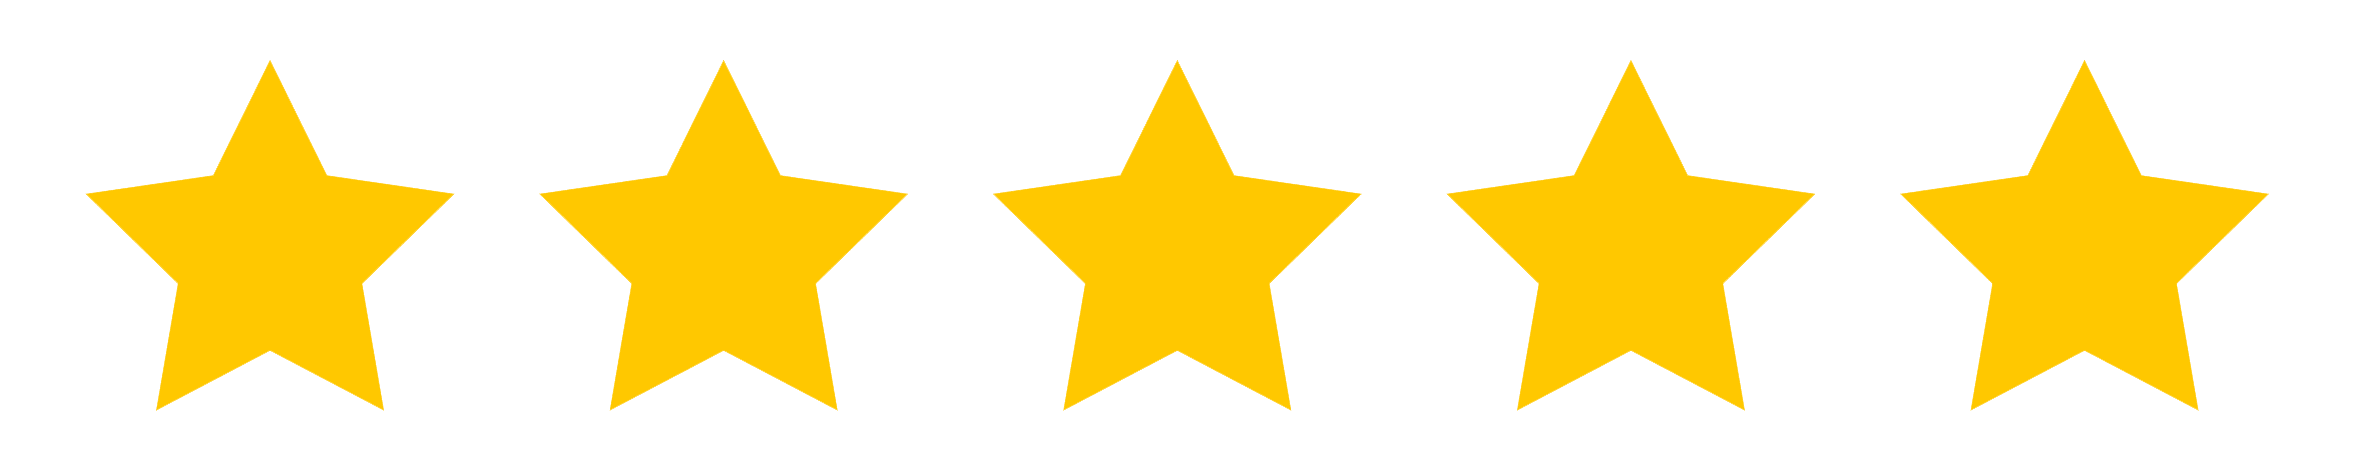 Reviews star rating from Diane C. for A-1 Self Storage in Fountain Valley, California